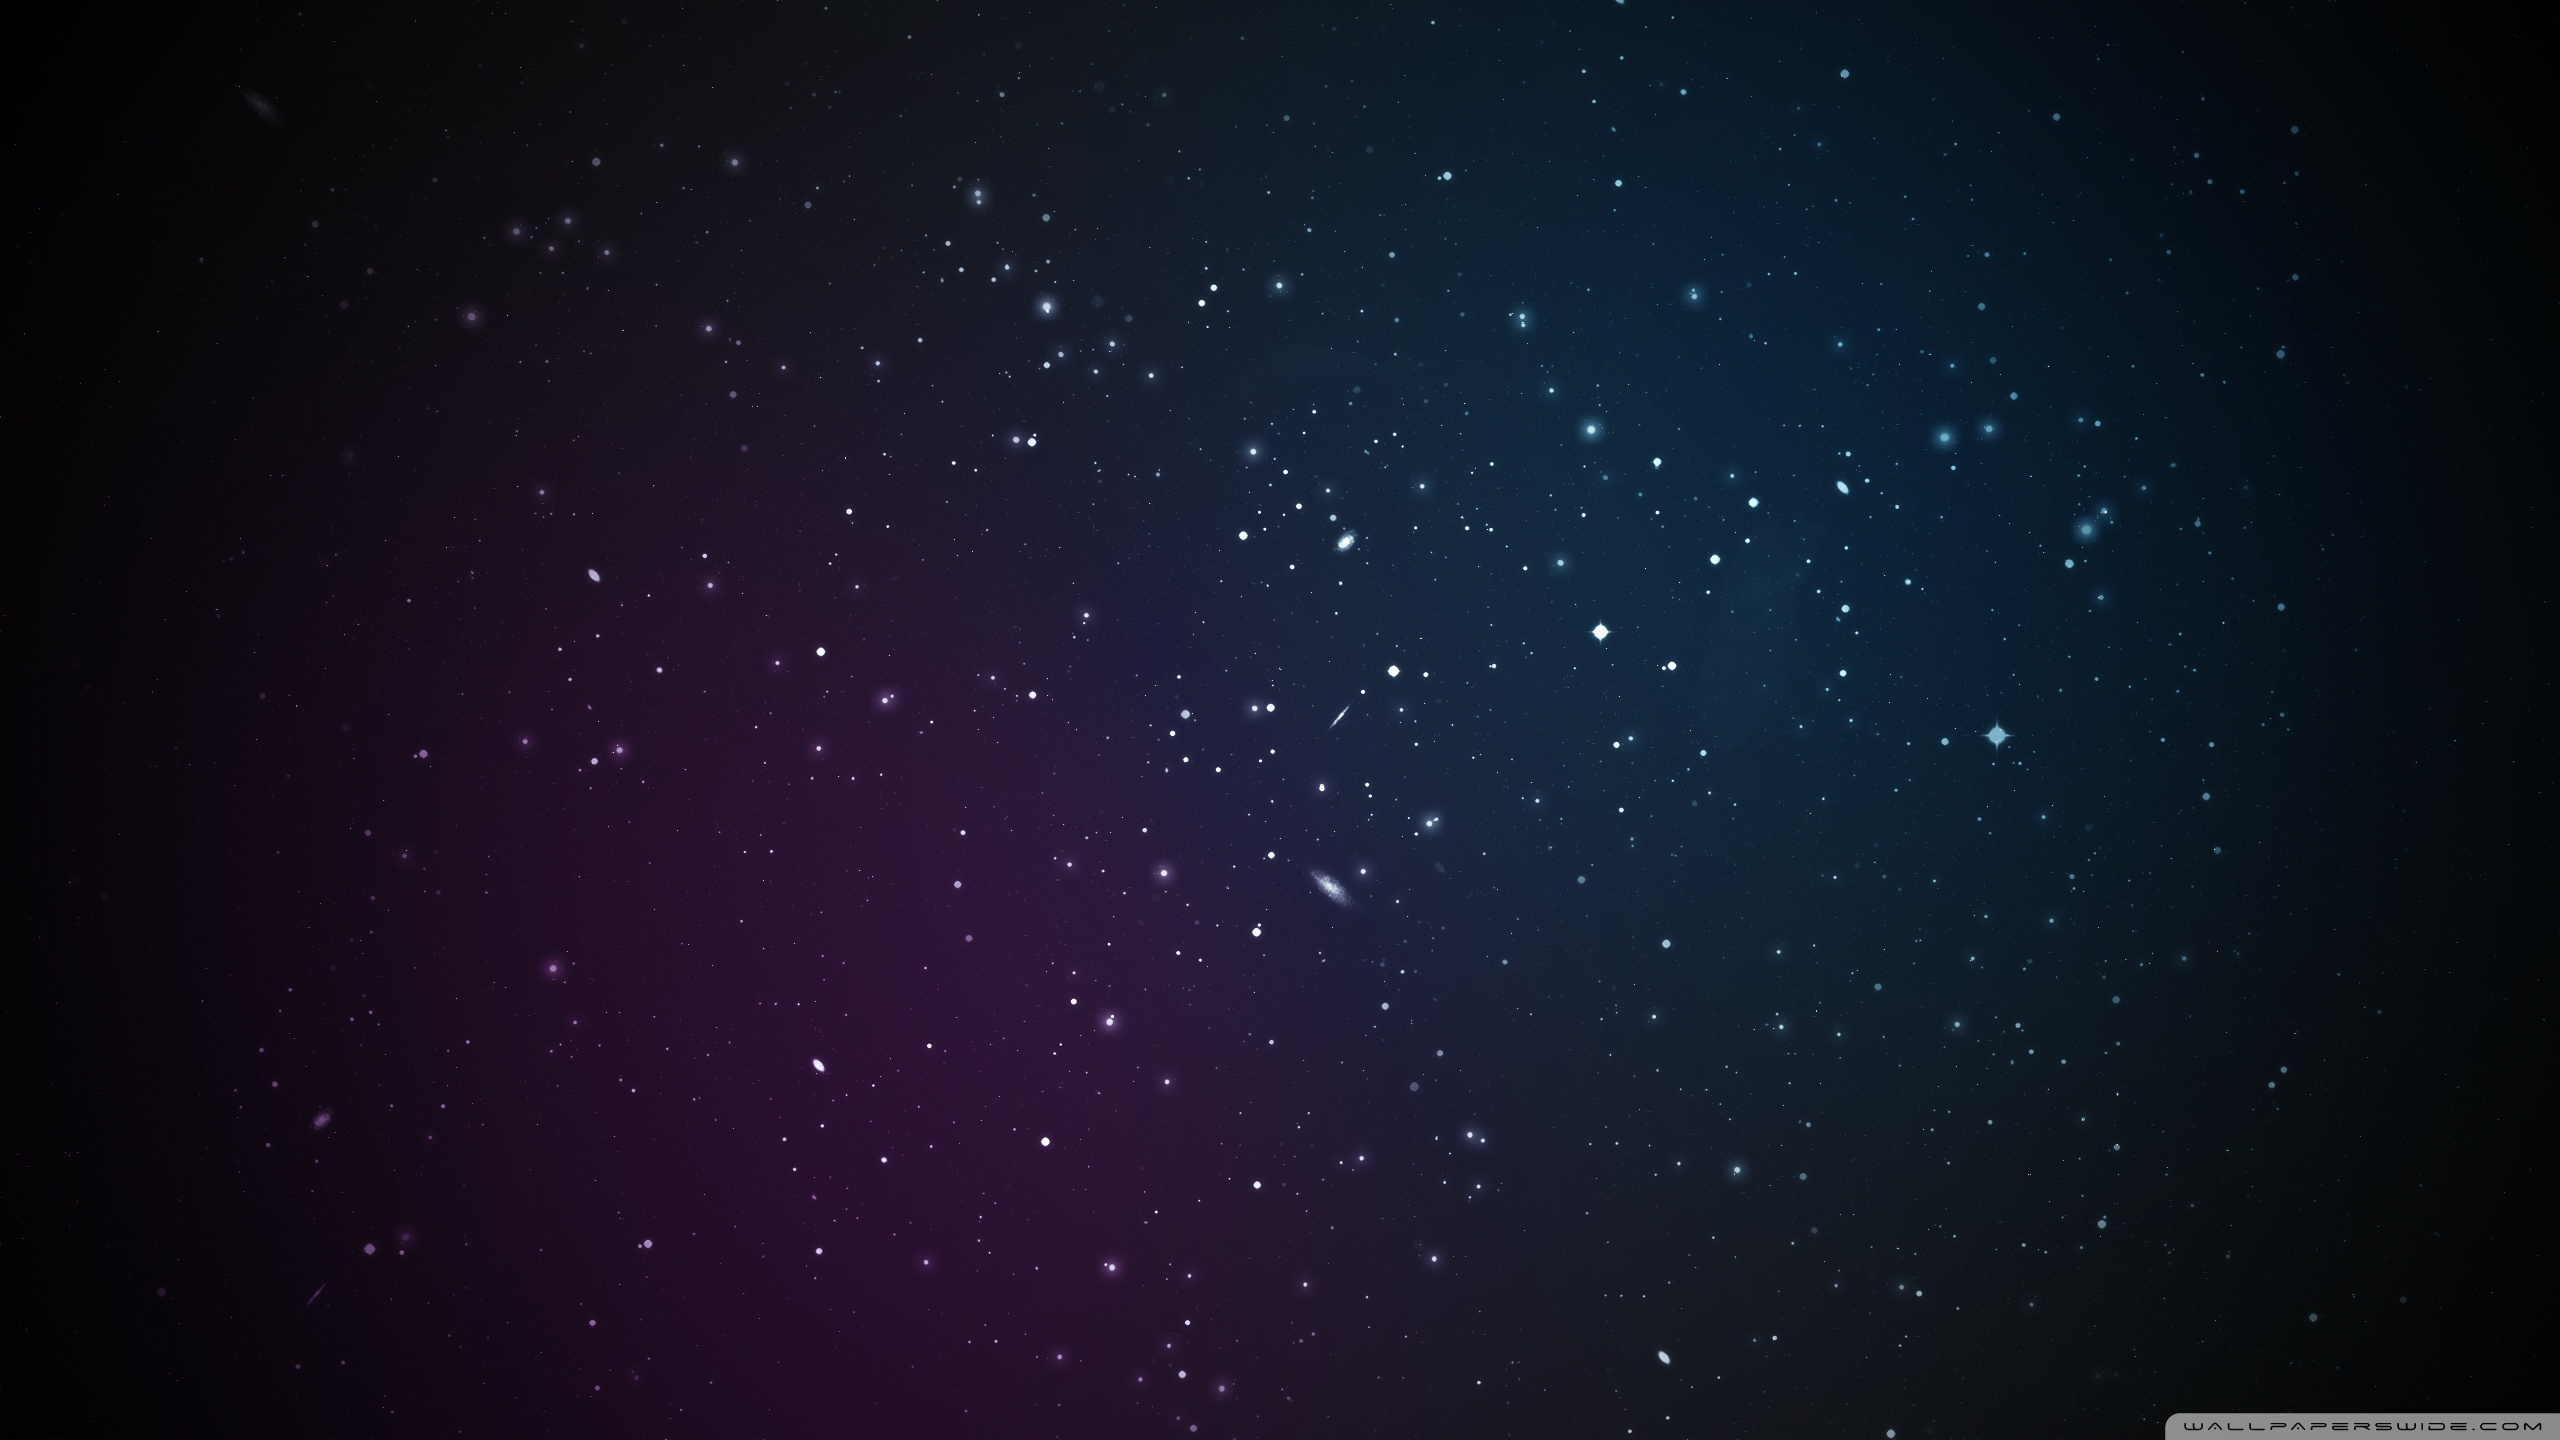 Galaxy hd wallpaper 1920x1080 44002 for Ecran pc retina